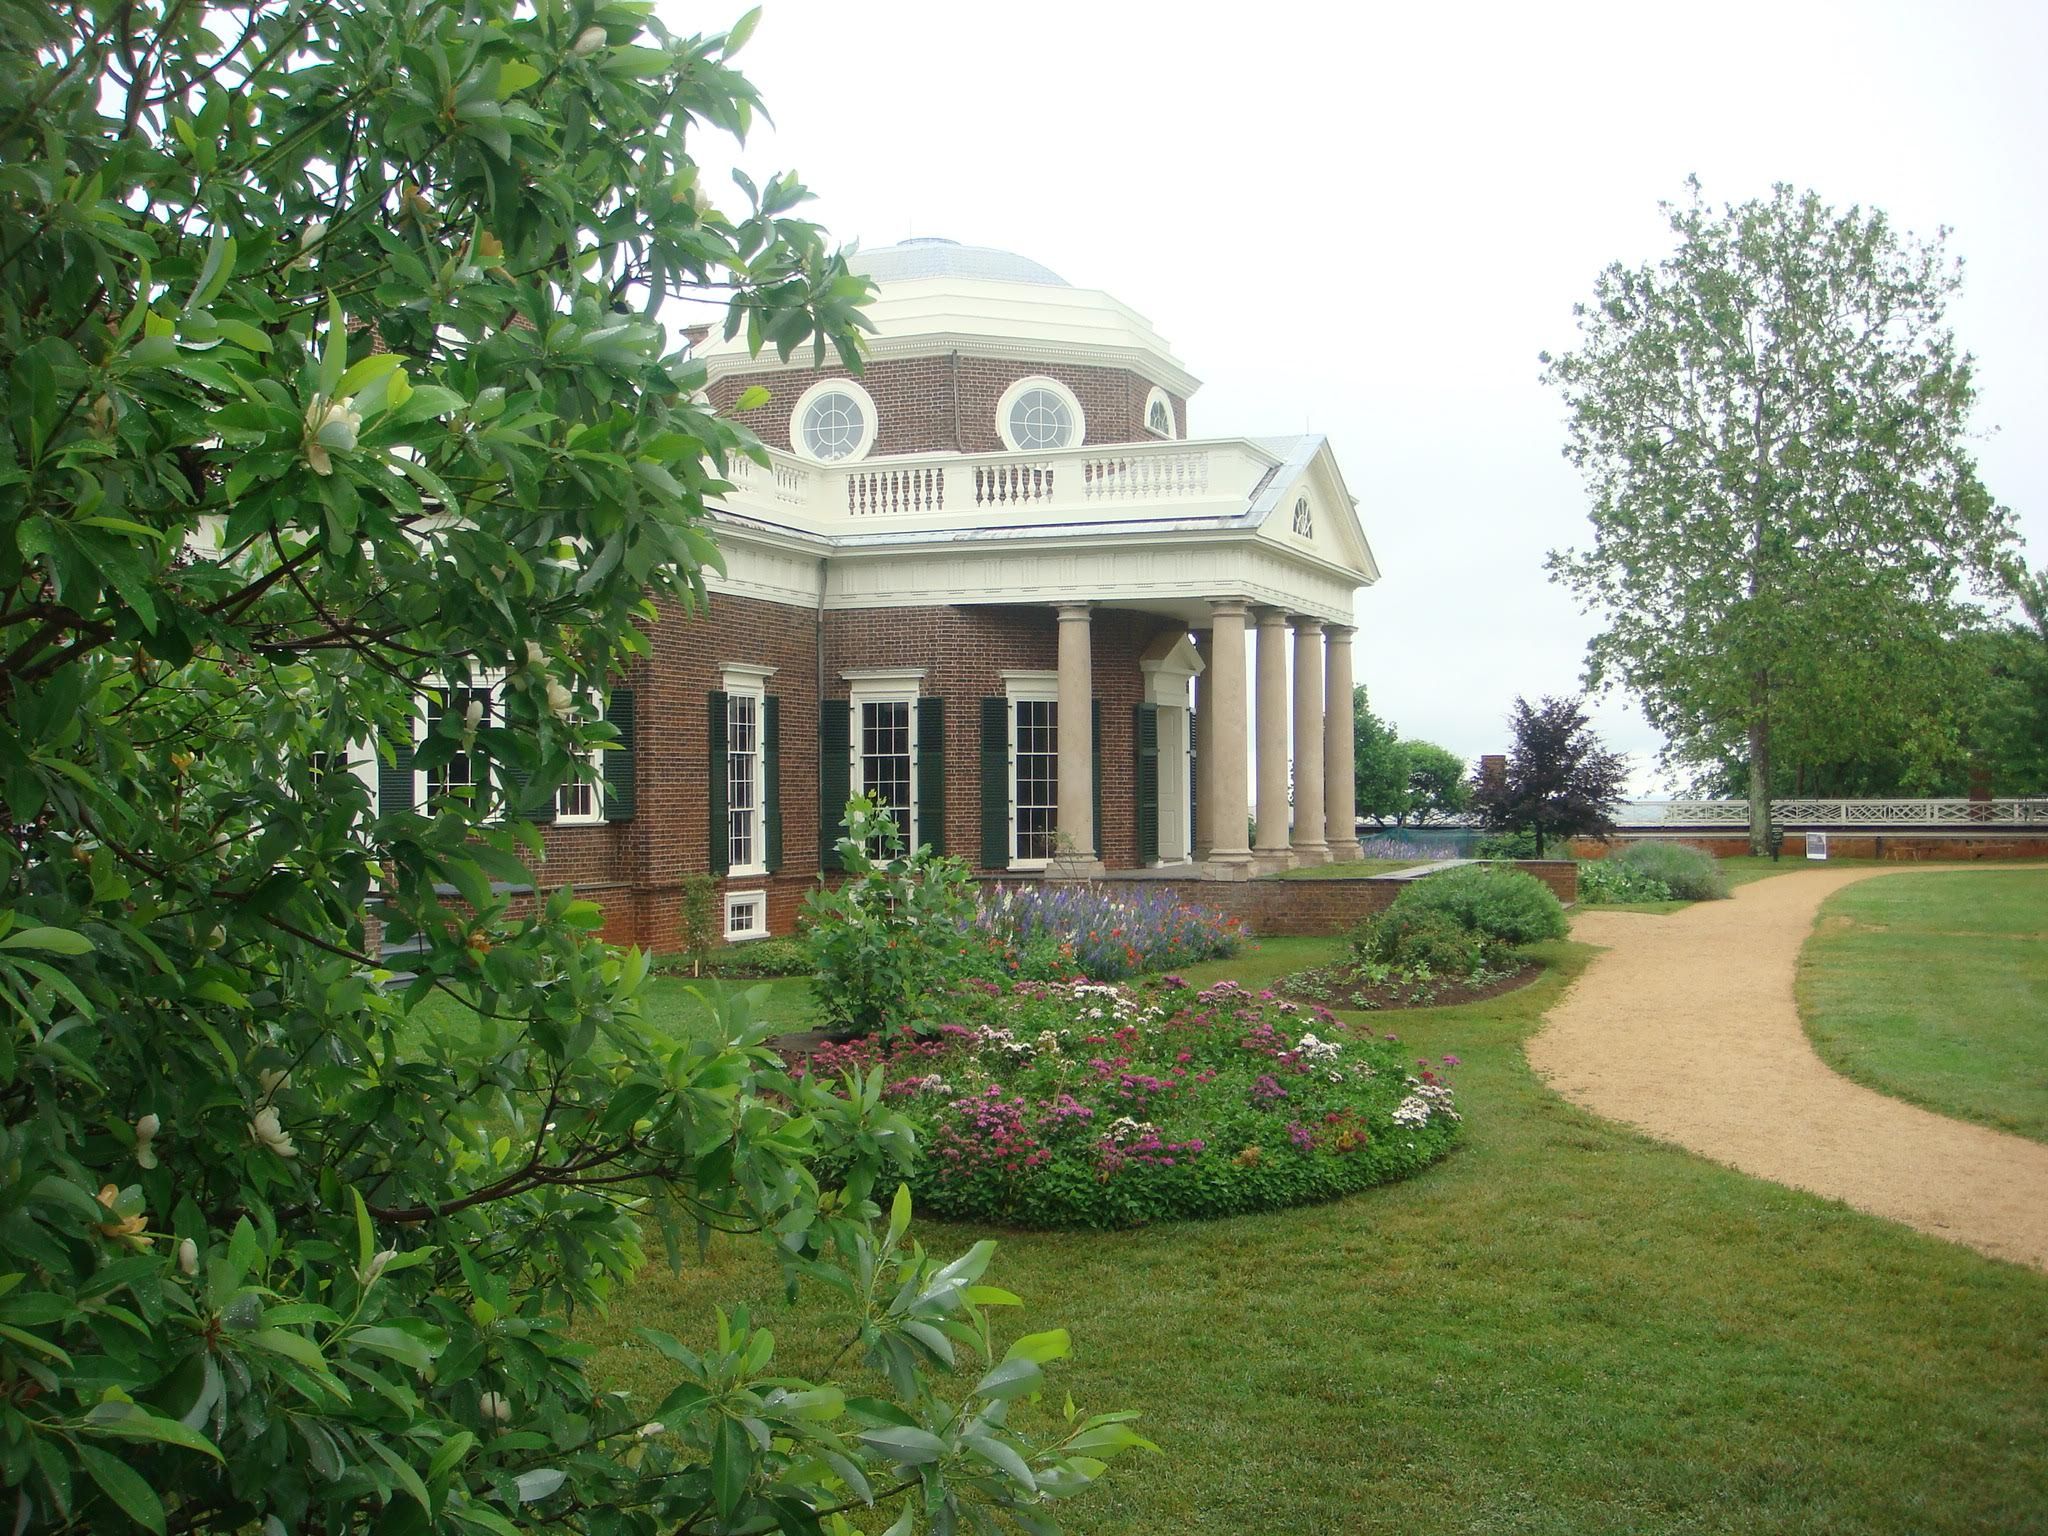 Monticello, home of Thomas Jefferson, the third President of the United States. A lot of Irish labor was used in building and maintaining the structure. (Photo courtesy of the author)